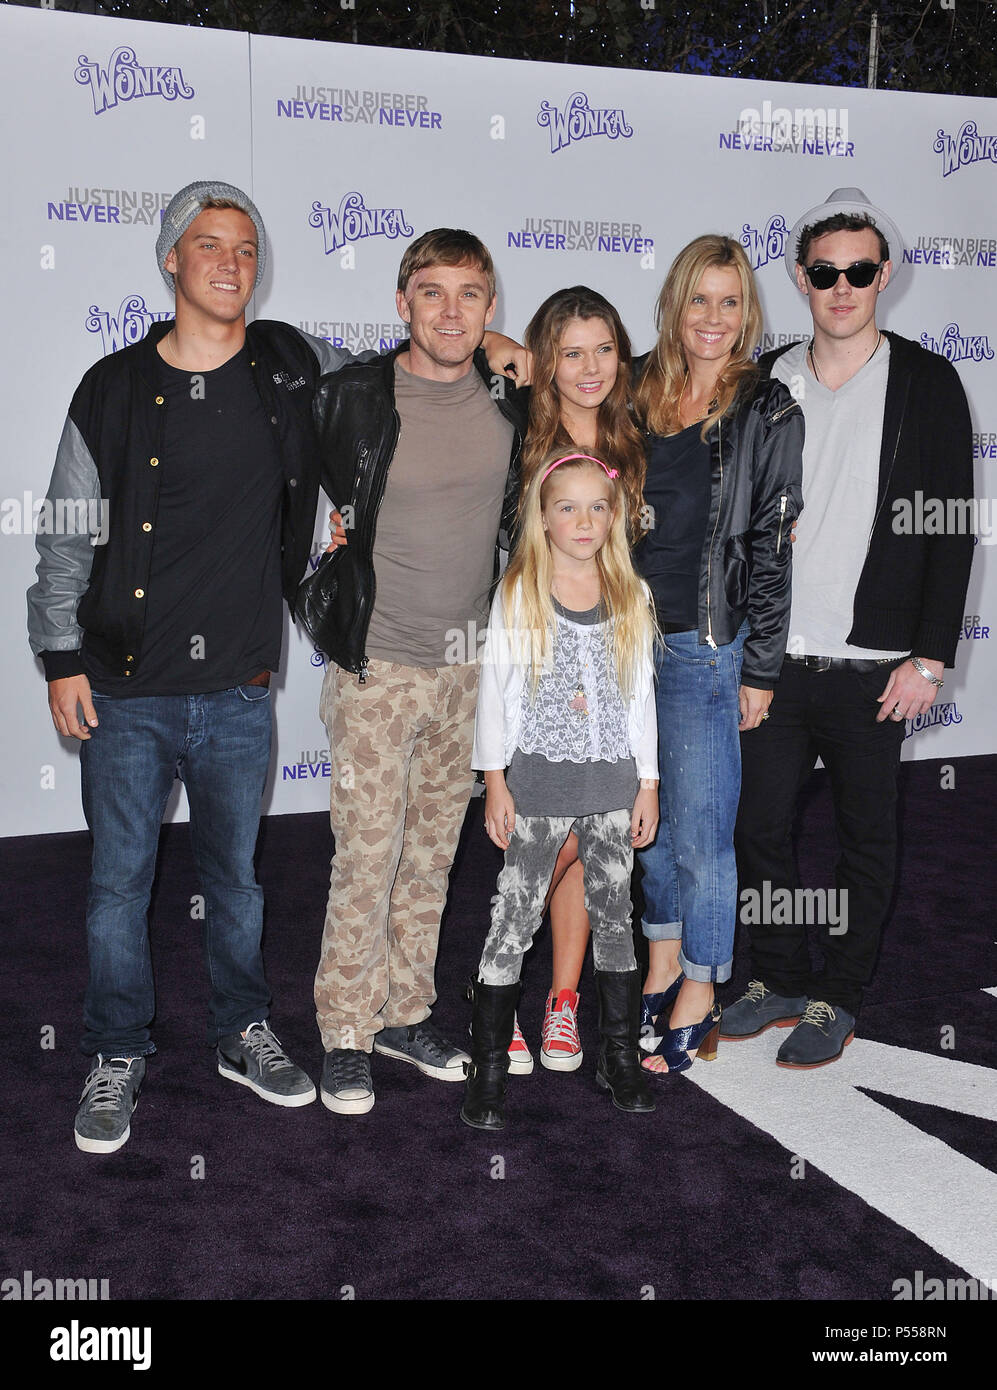 Schroeder Family Stock Photos Images Alamy Ares Maroon Nokha Sneakers Women 36 Never Say Premiere At The Nokia Theatre In Los Angeles Rick